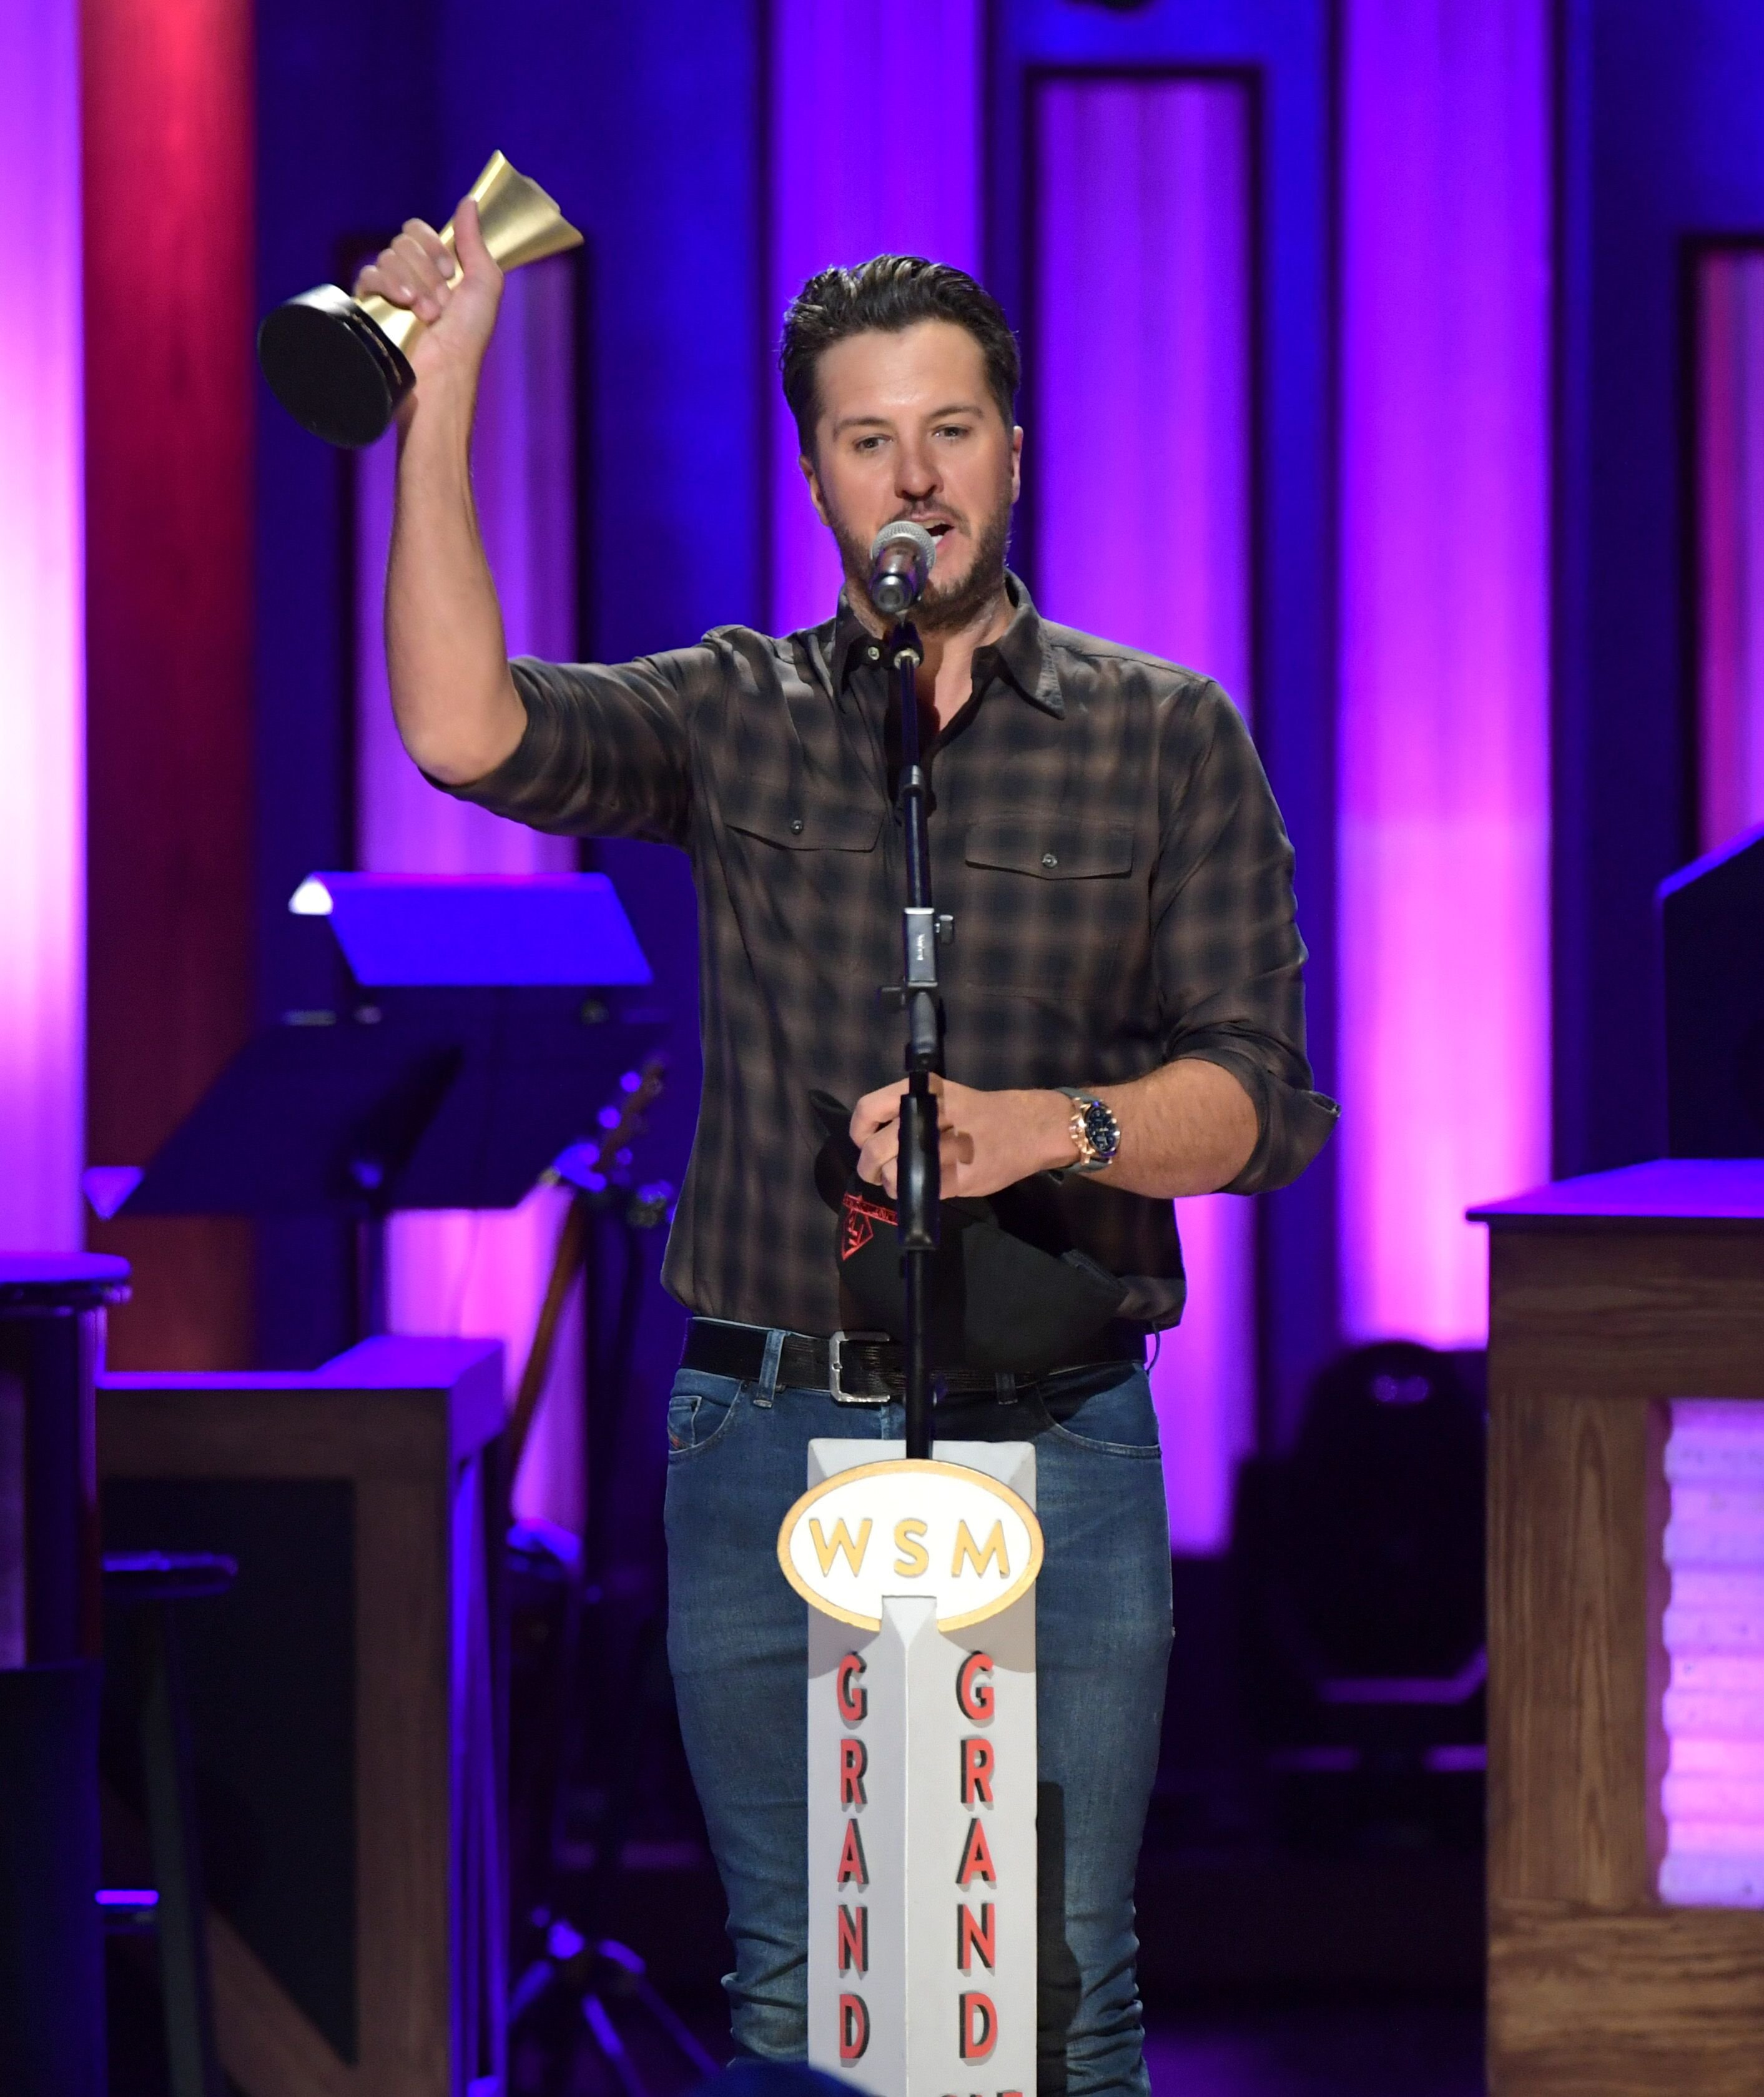 Luke Bryan receives an Artist of the Decade award at the Grand Ole Opry House on October 22, 2019 in Nashville, Tennessee. | Source: Getty Images